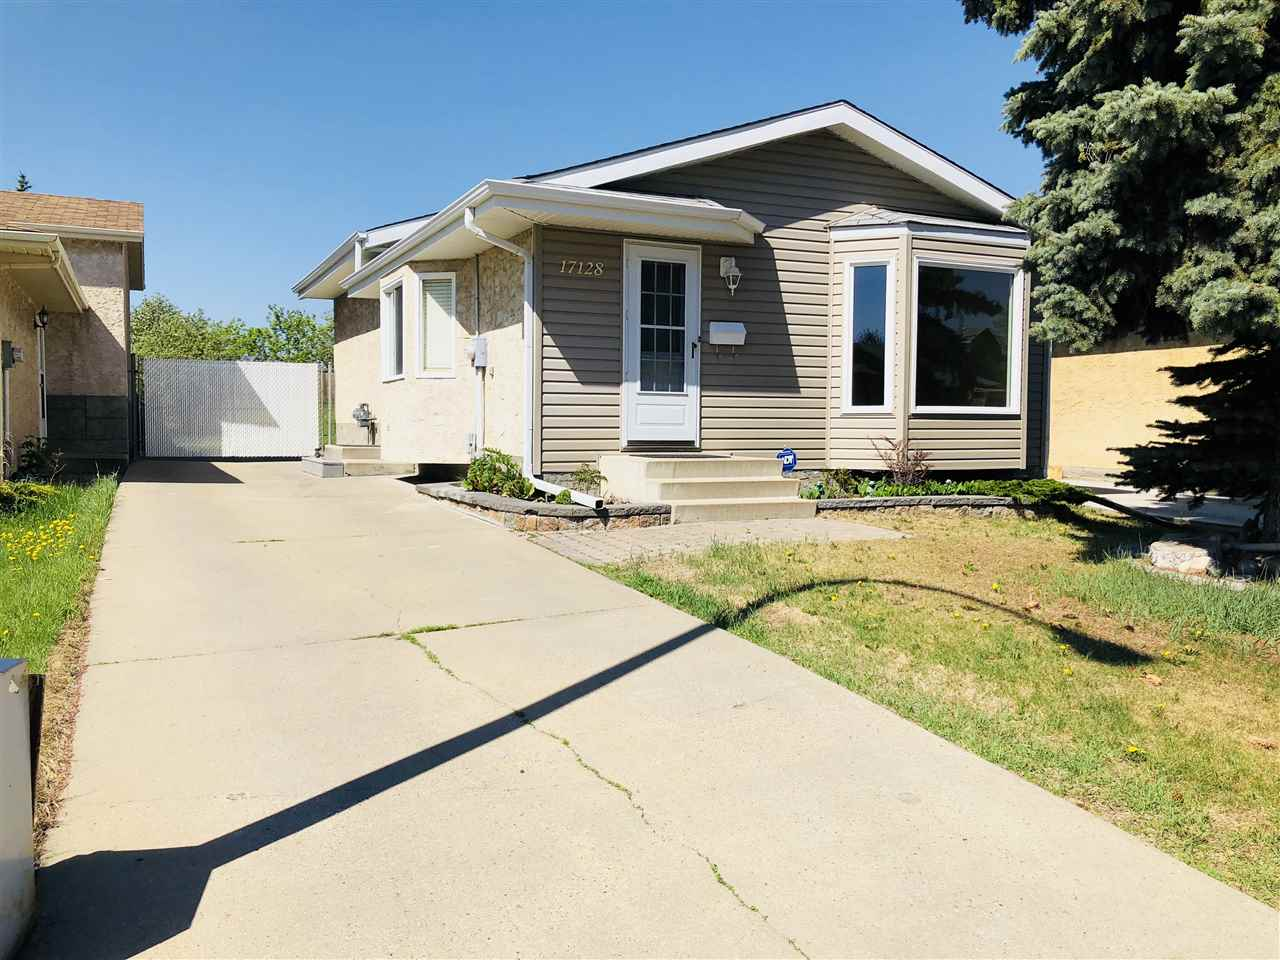 17128 96 Street, 4 bed, 2 bath, at $277,900